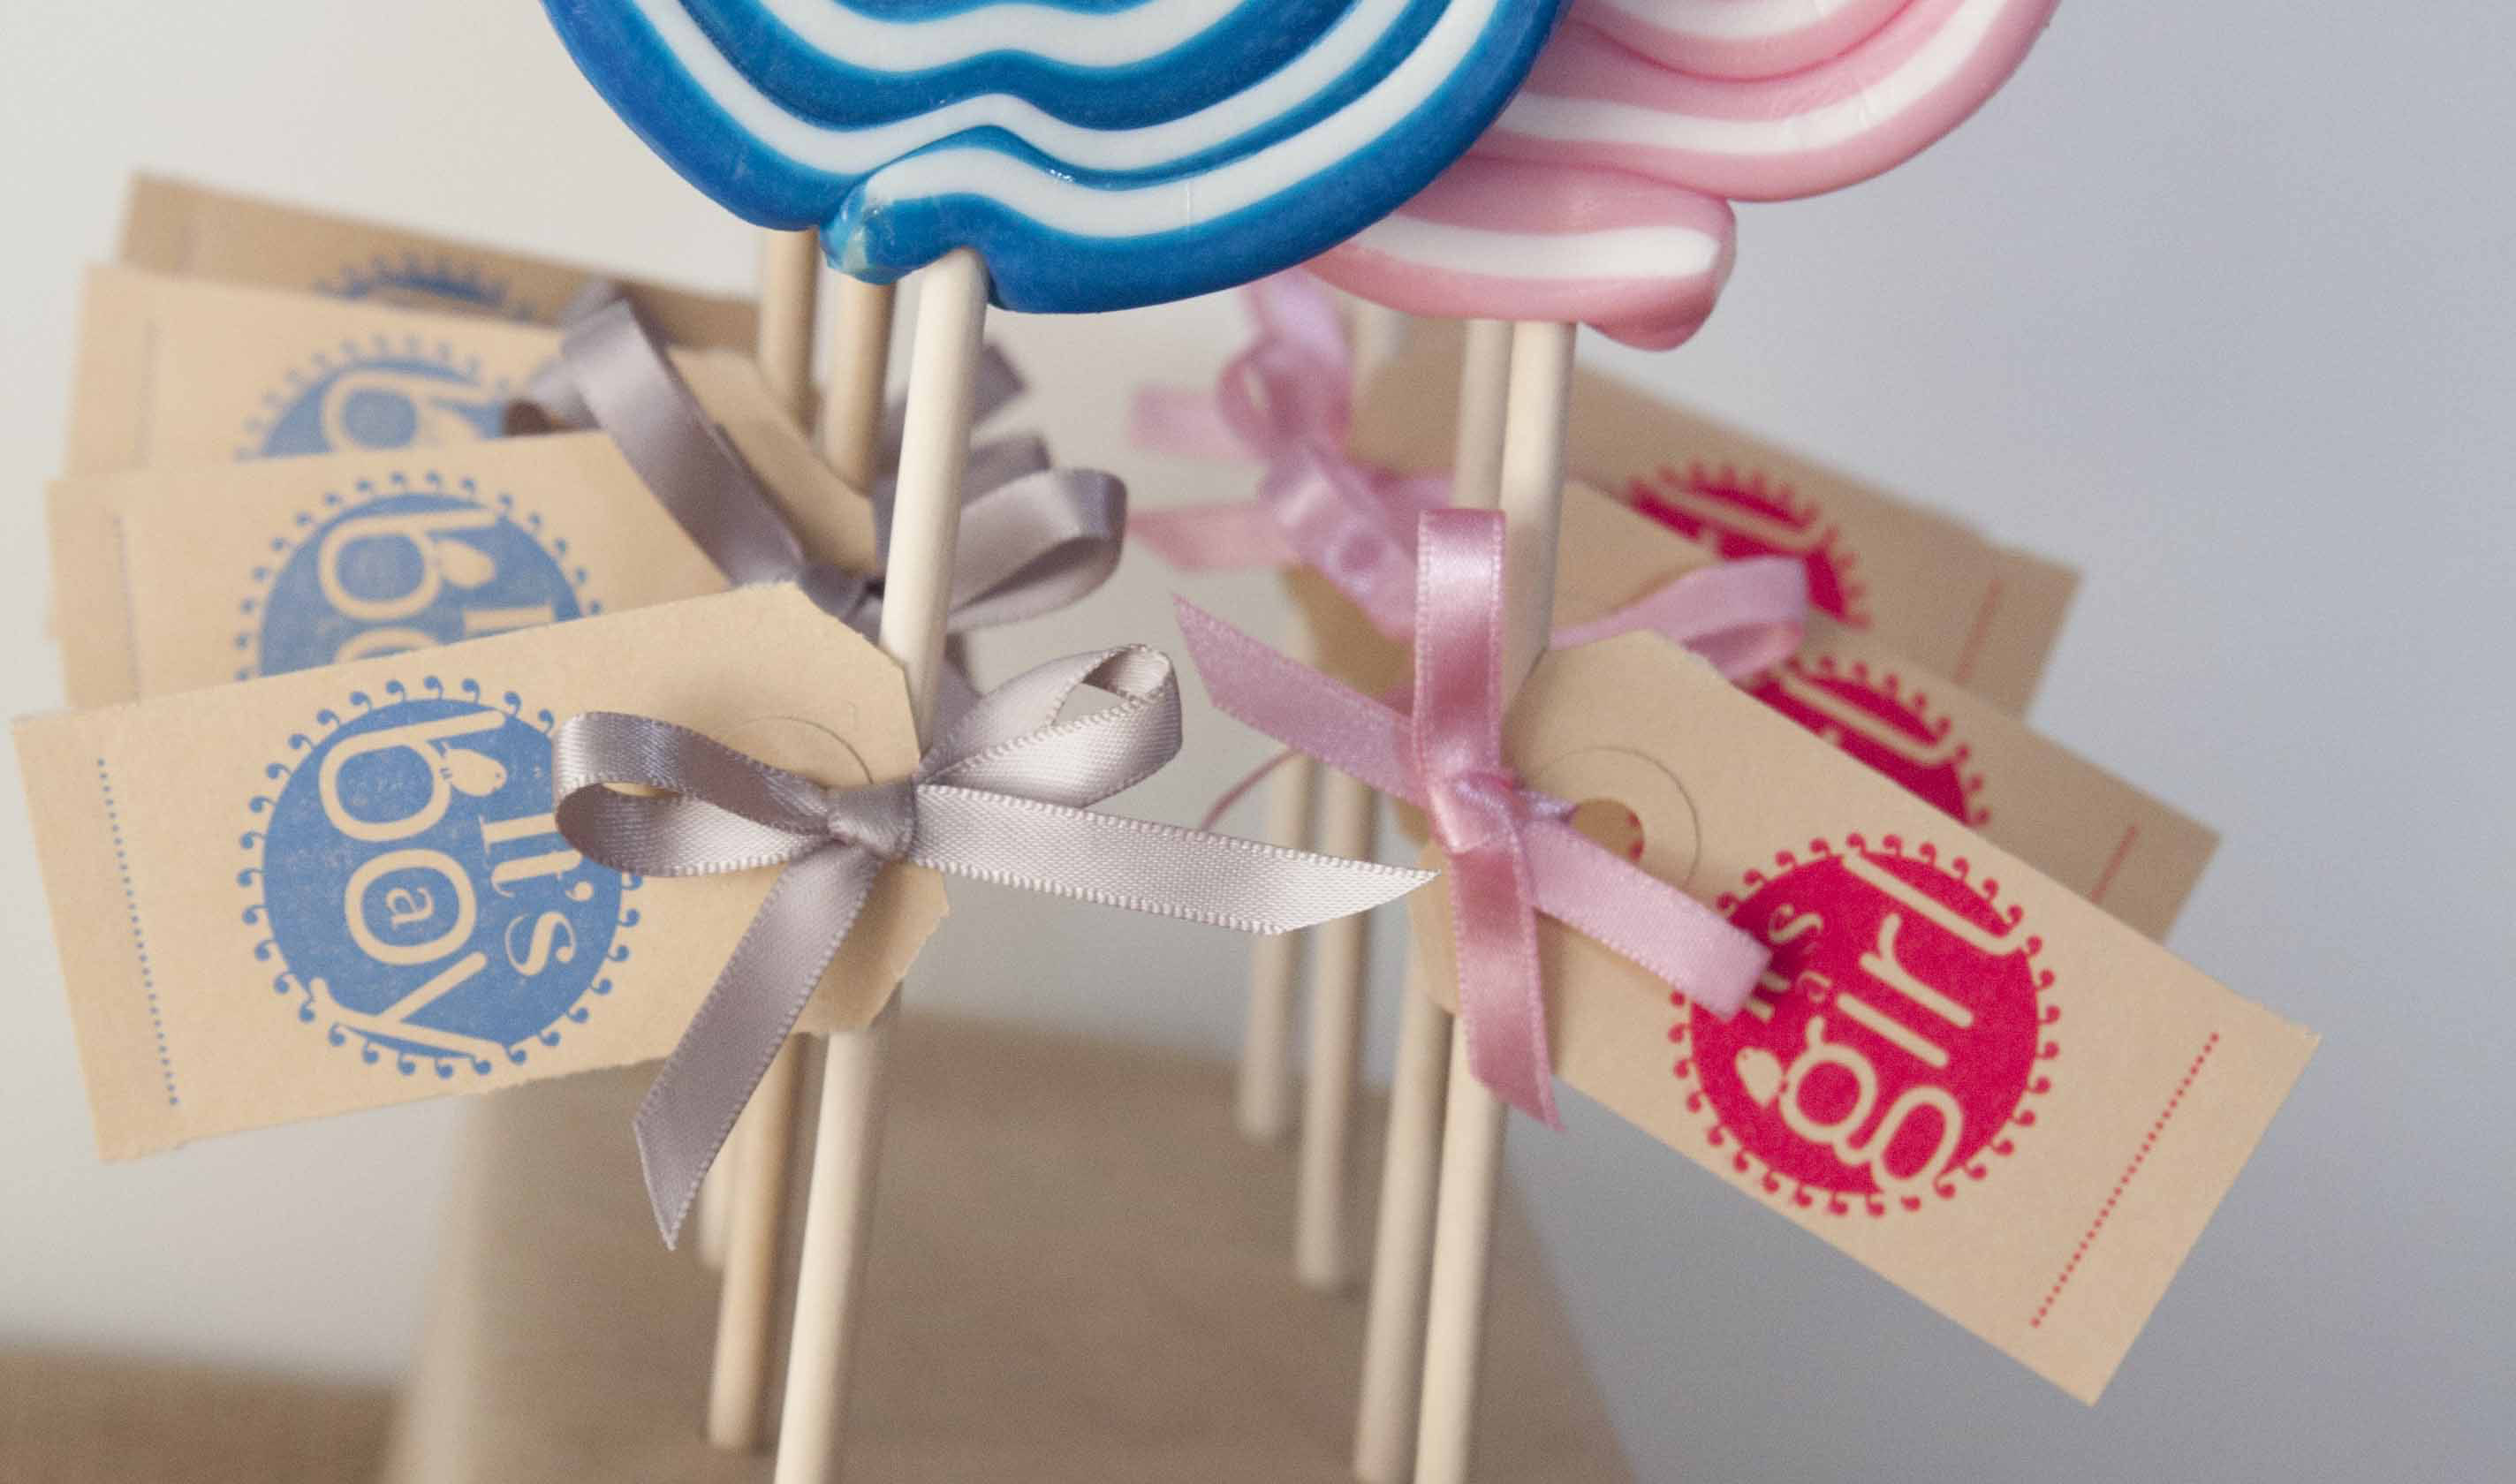 Kraamfeest: Lolly's met een label in letterpress